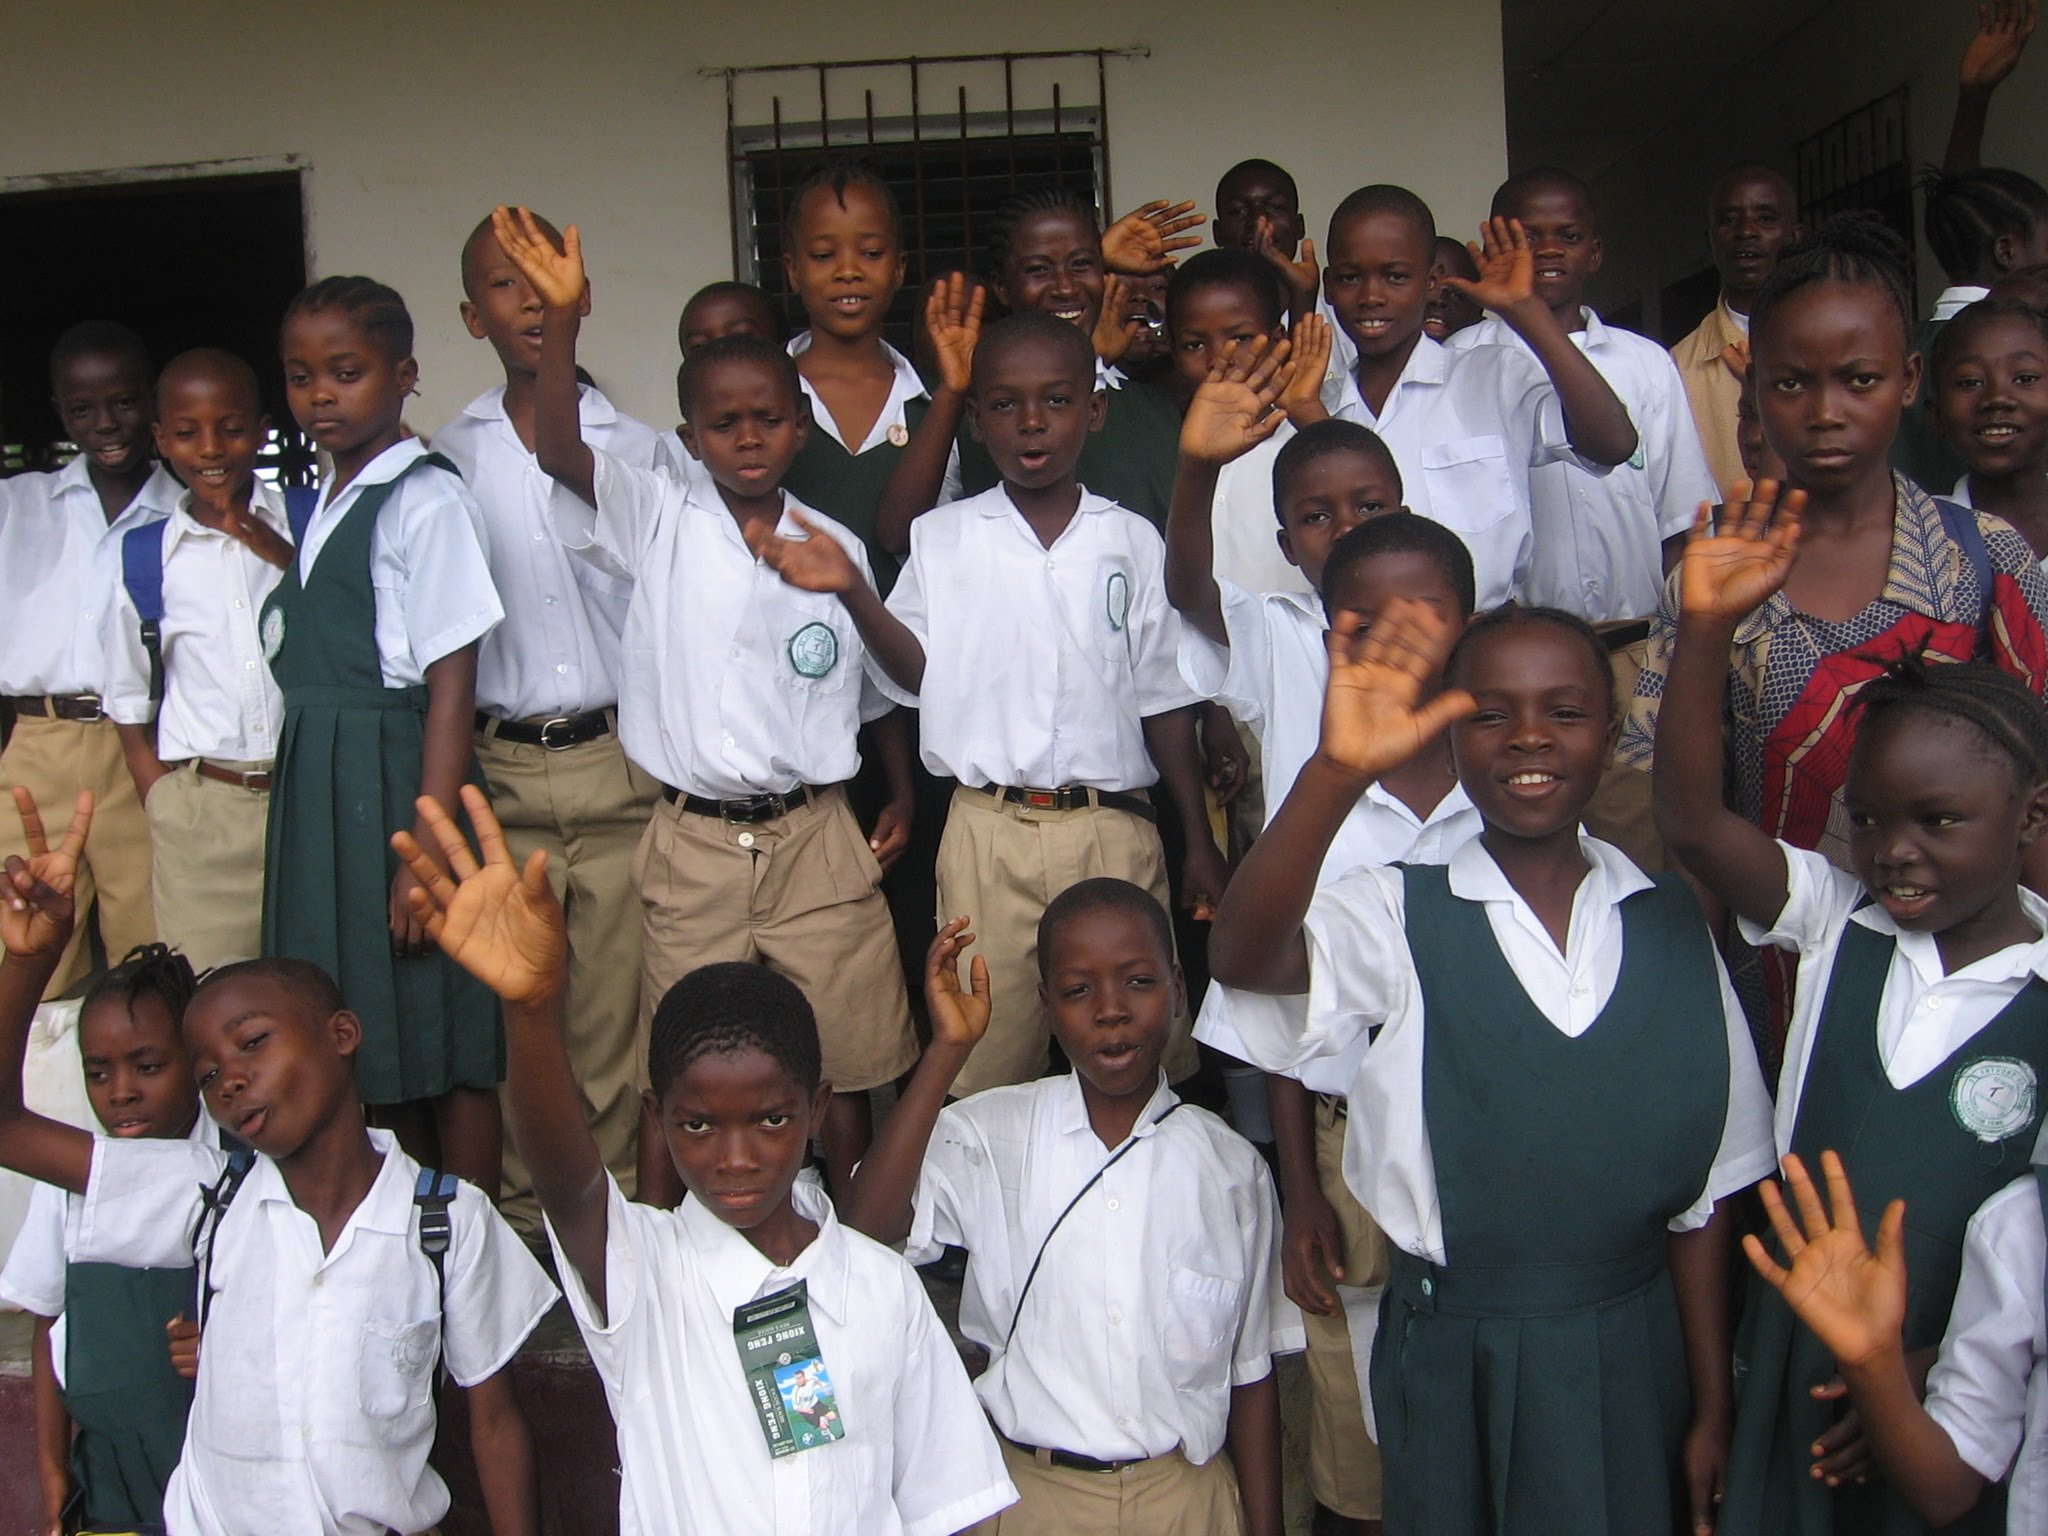 Students gathered in 2008 before school starts.